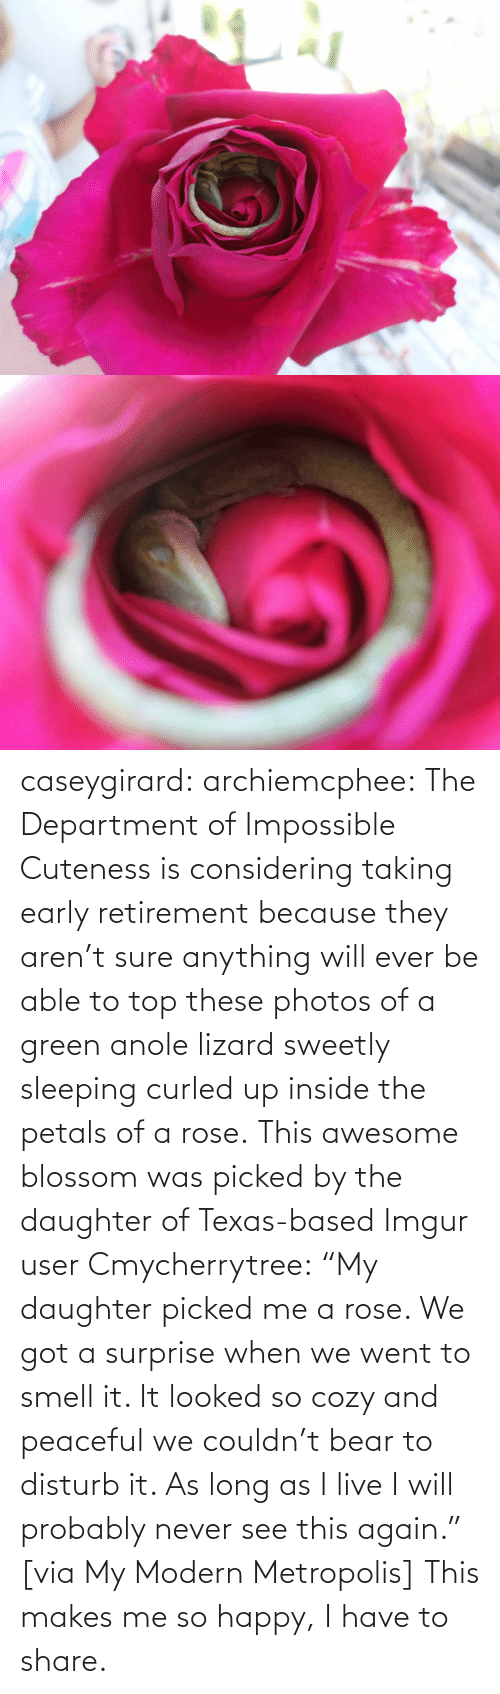 "probably: caseygirard:  archiemcphee:   The Department of Impossible Cuteness is considering taking early retirement because they aren't sure anything will ever be able to top these photos of a green anole lizard sweetly sleeping curled up inside the petals of a rose. This awesome blossom was picked by the daughter of Texas-based Imgur user Cmycherrytree: ""My daughter picked me a rose. We got a surprise when we went to smell it. It looked so cozy and peaceful we couldn't bear to disturb it. As long as I live I will probably never see this again."" [via My Modern Metropolis]   This makes me so happy, I have to share."